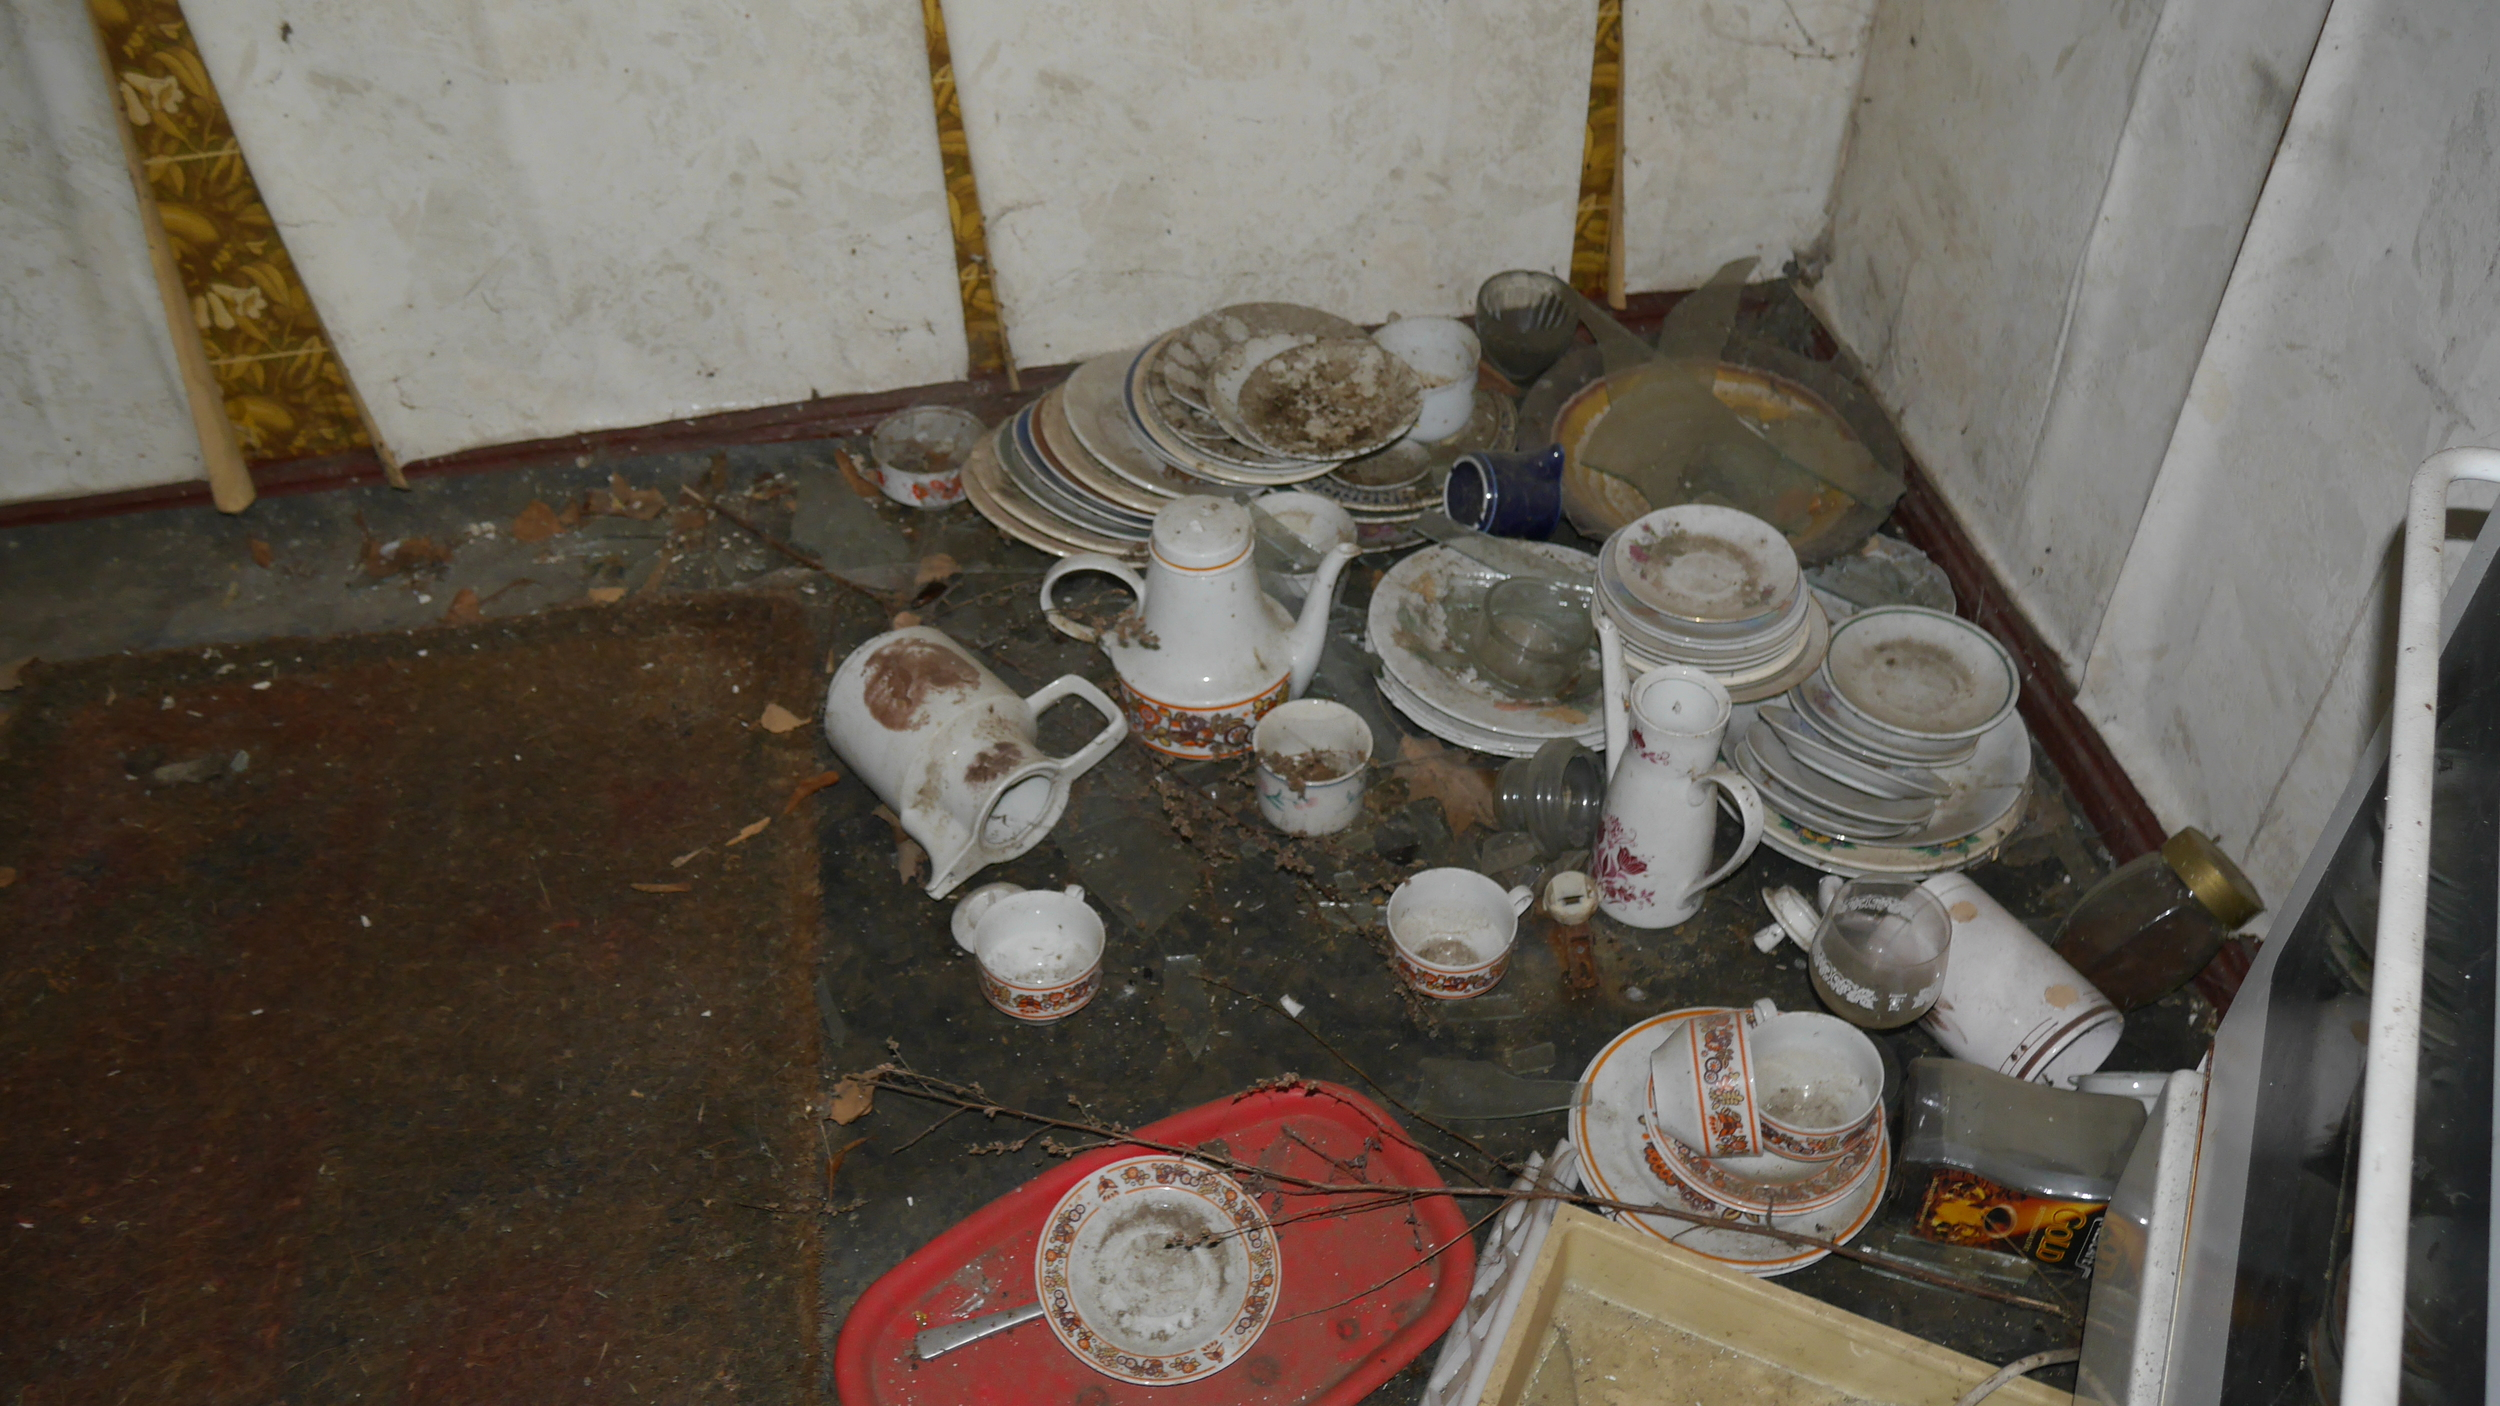 Cups and plates kitchen.JPG